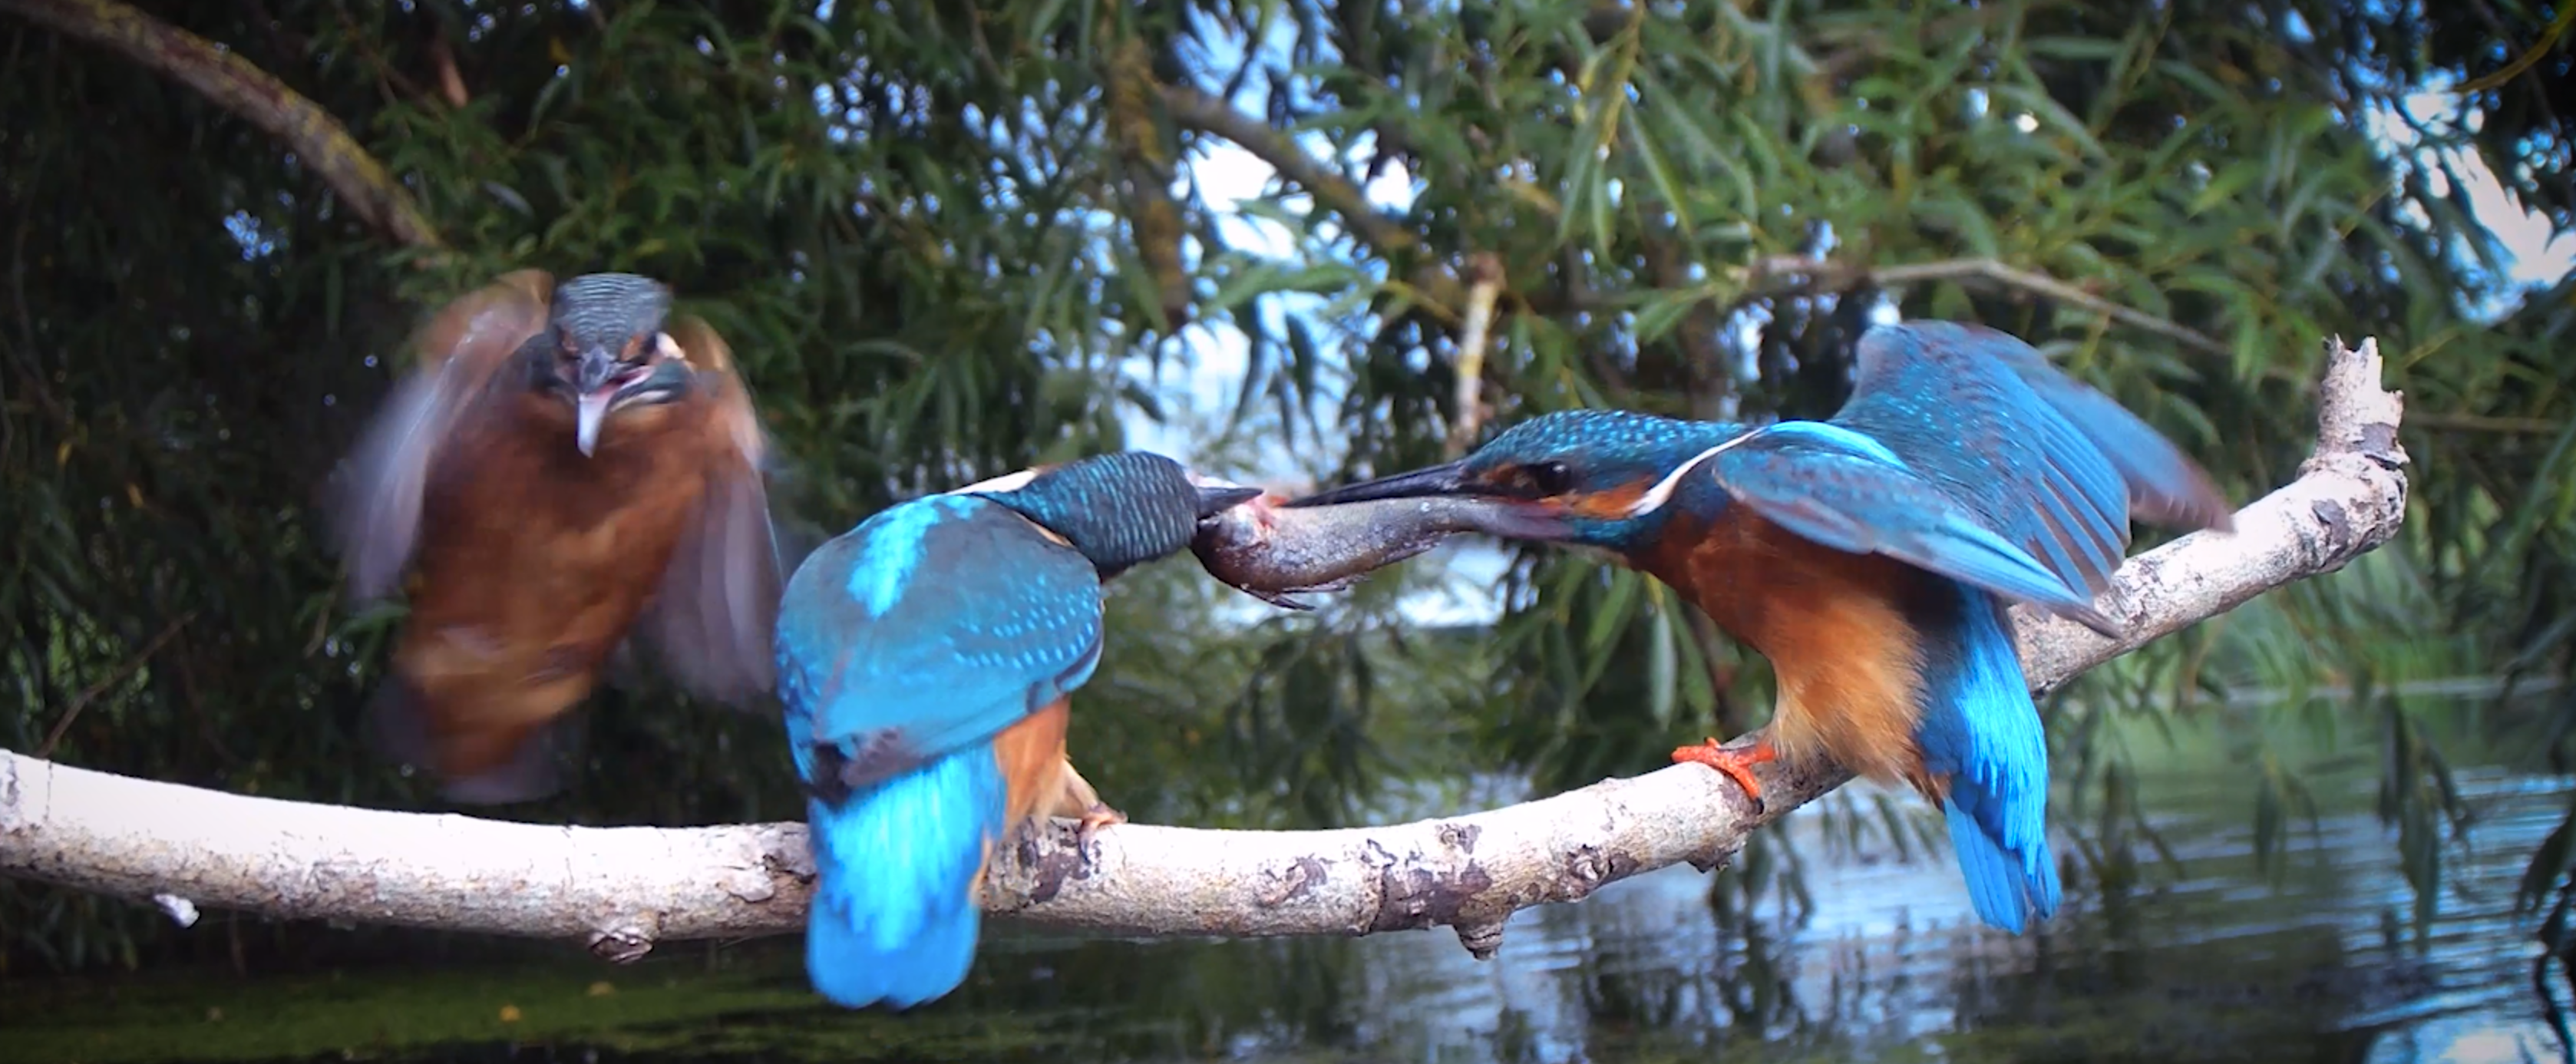 kingfishers steals fish